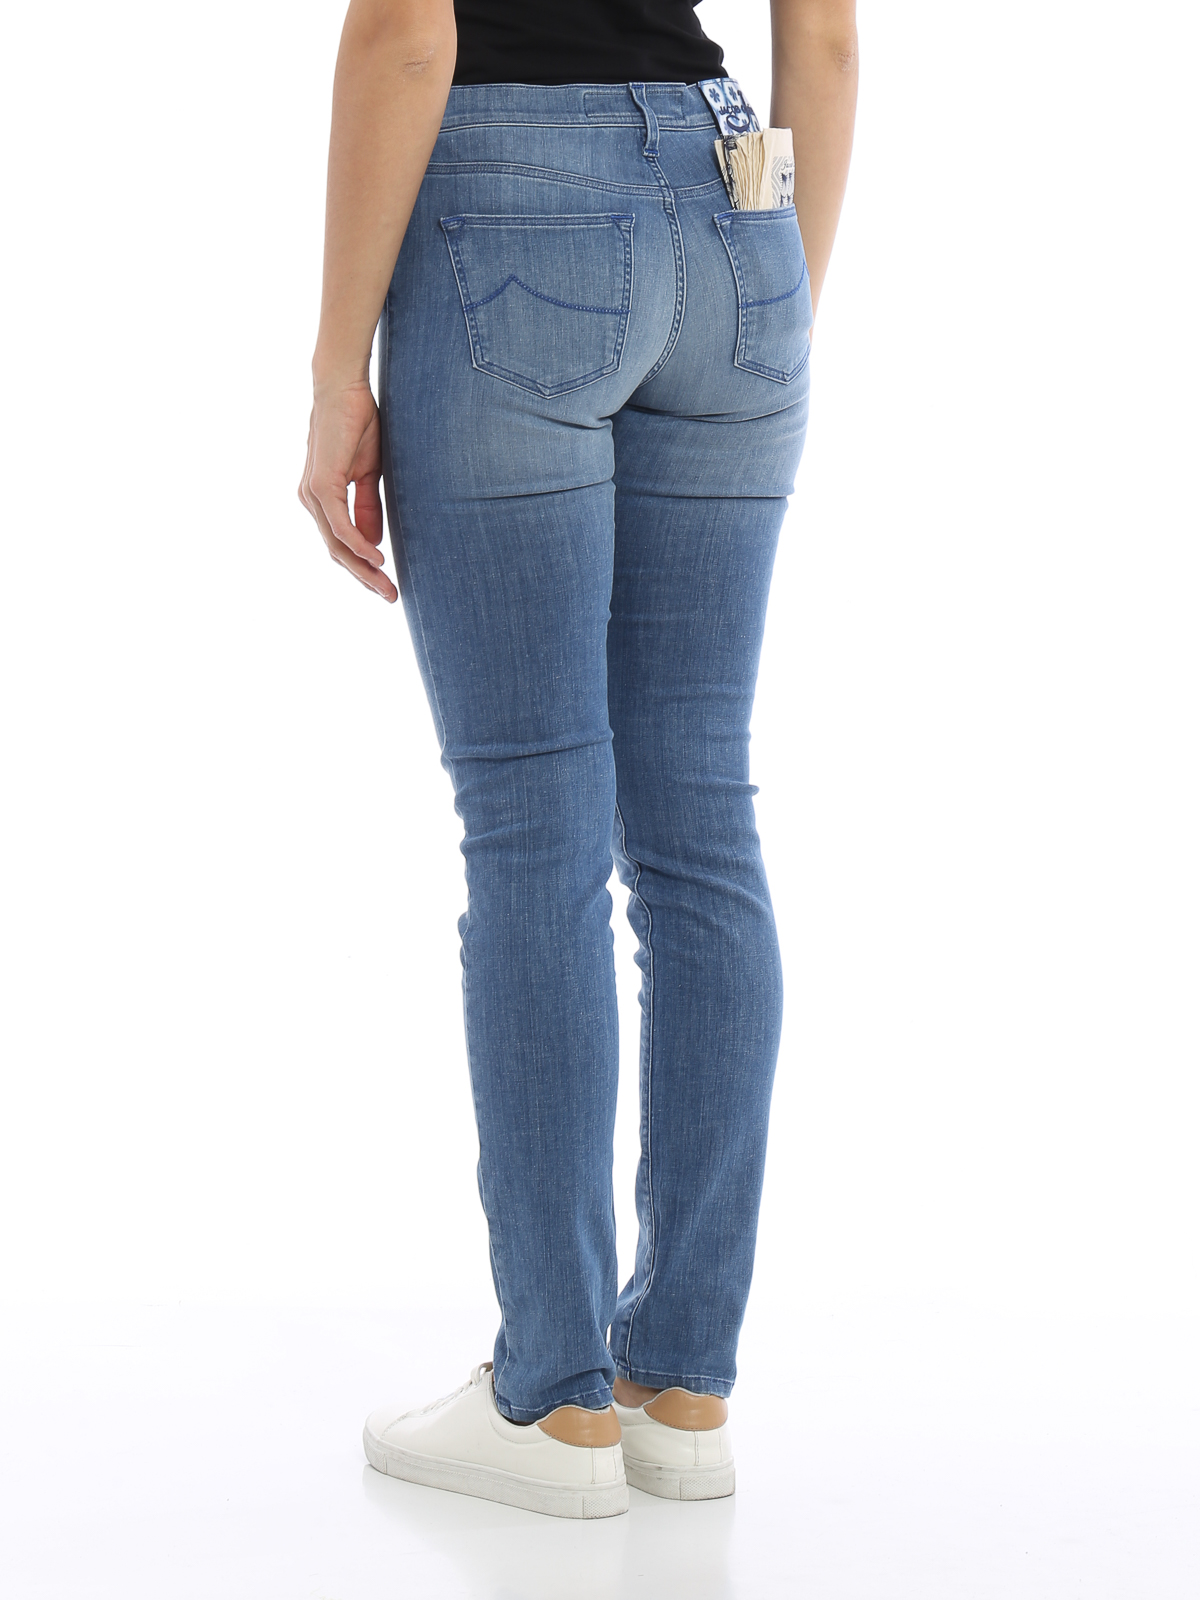 Free shipping & returns on high-waisted jeans for women at paydayloansonlinesameday.ga Shop for high waisted jeans by leg style, wash, waist size, and more from top brands. Free shipping and returns.